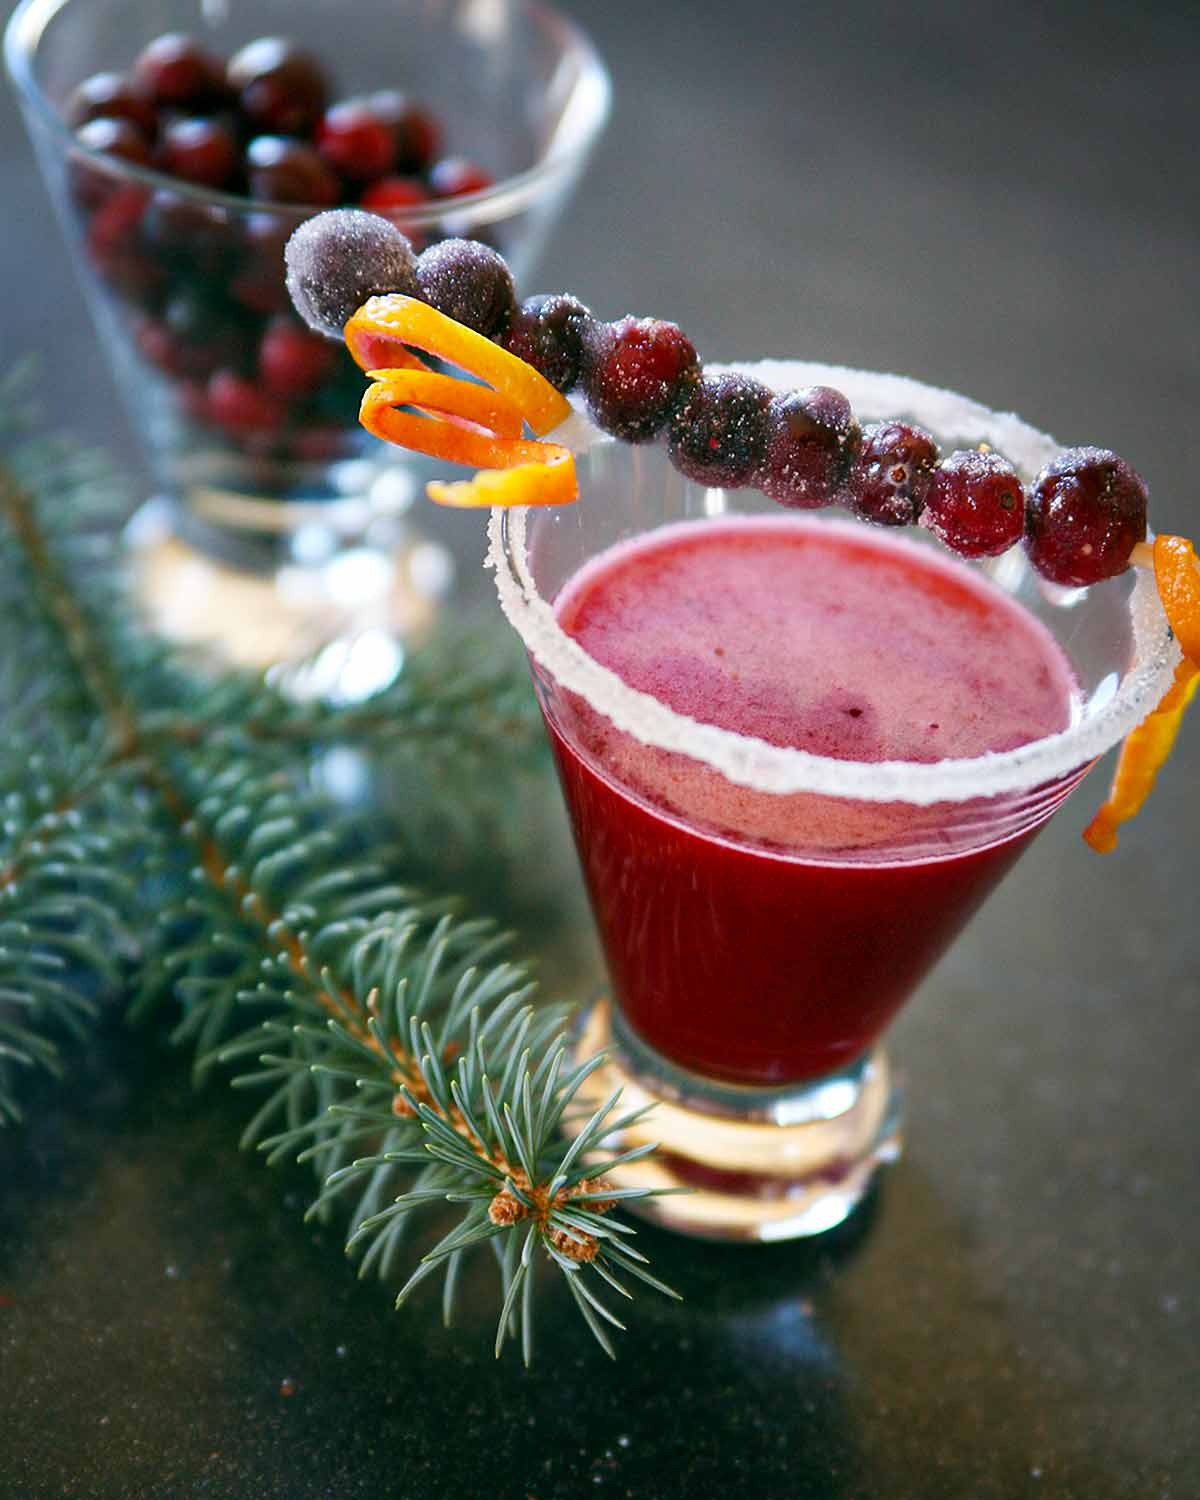 A cranberry margarita in a short glass with a skewer or sugared cranberries and orange zest across the top.